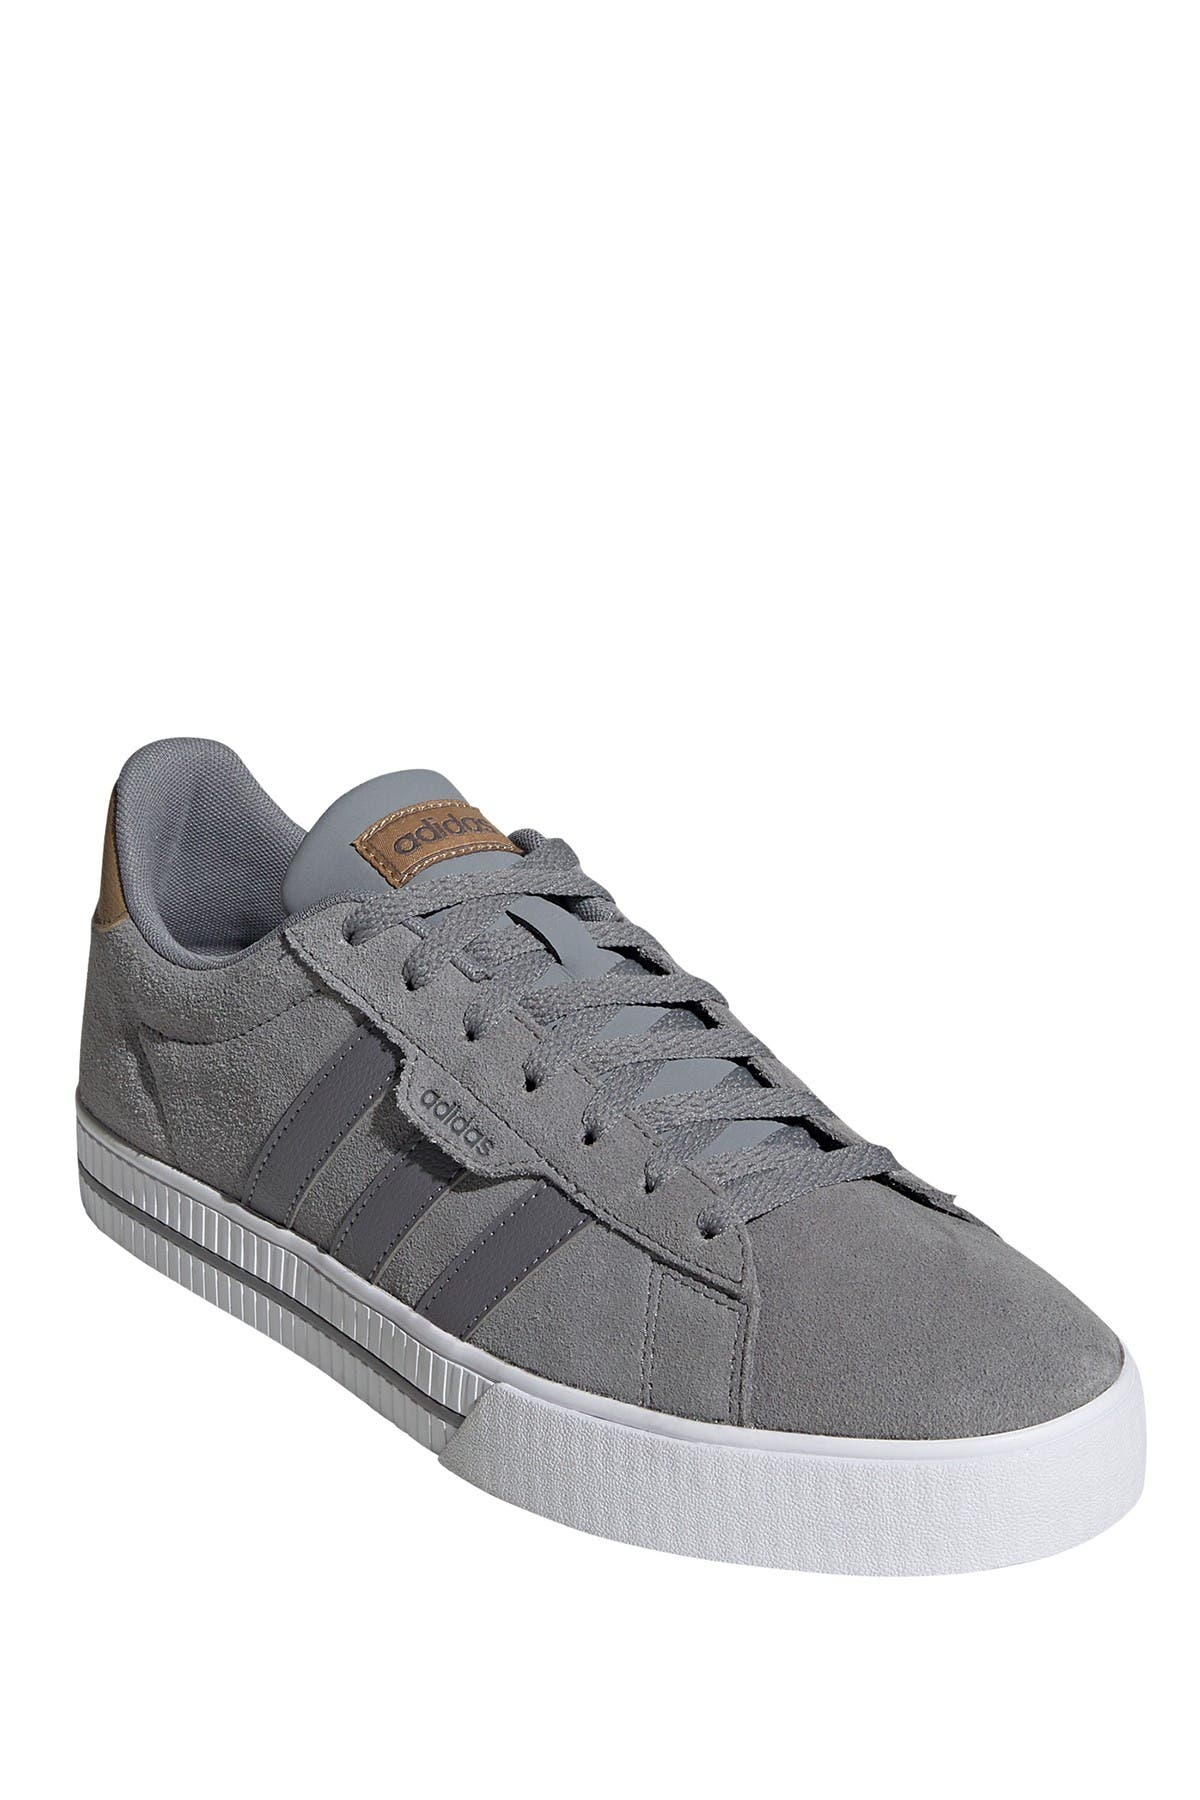 Image of adidas Daily 3.0 Sneaker